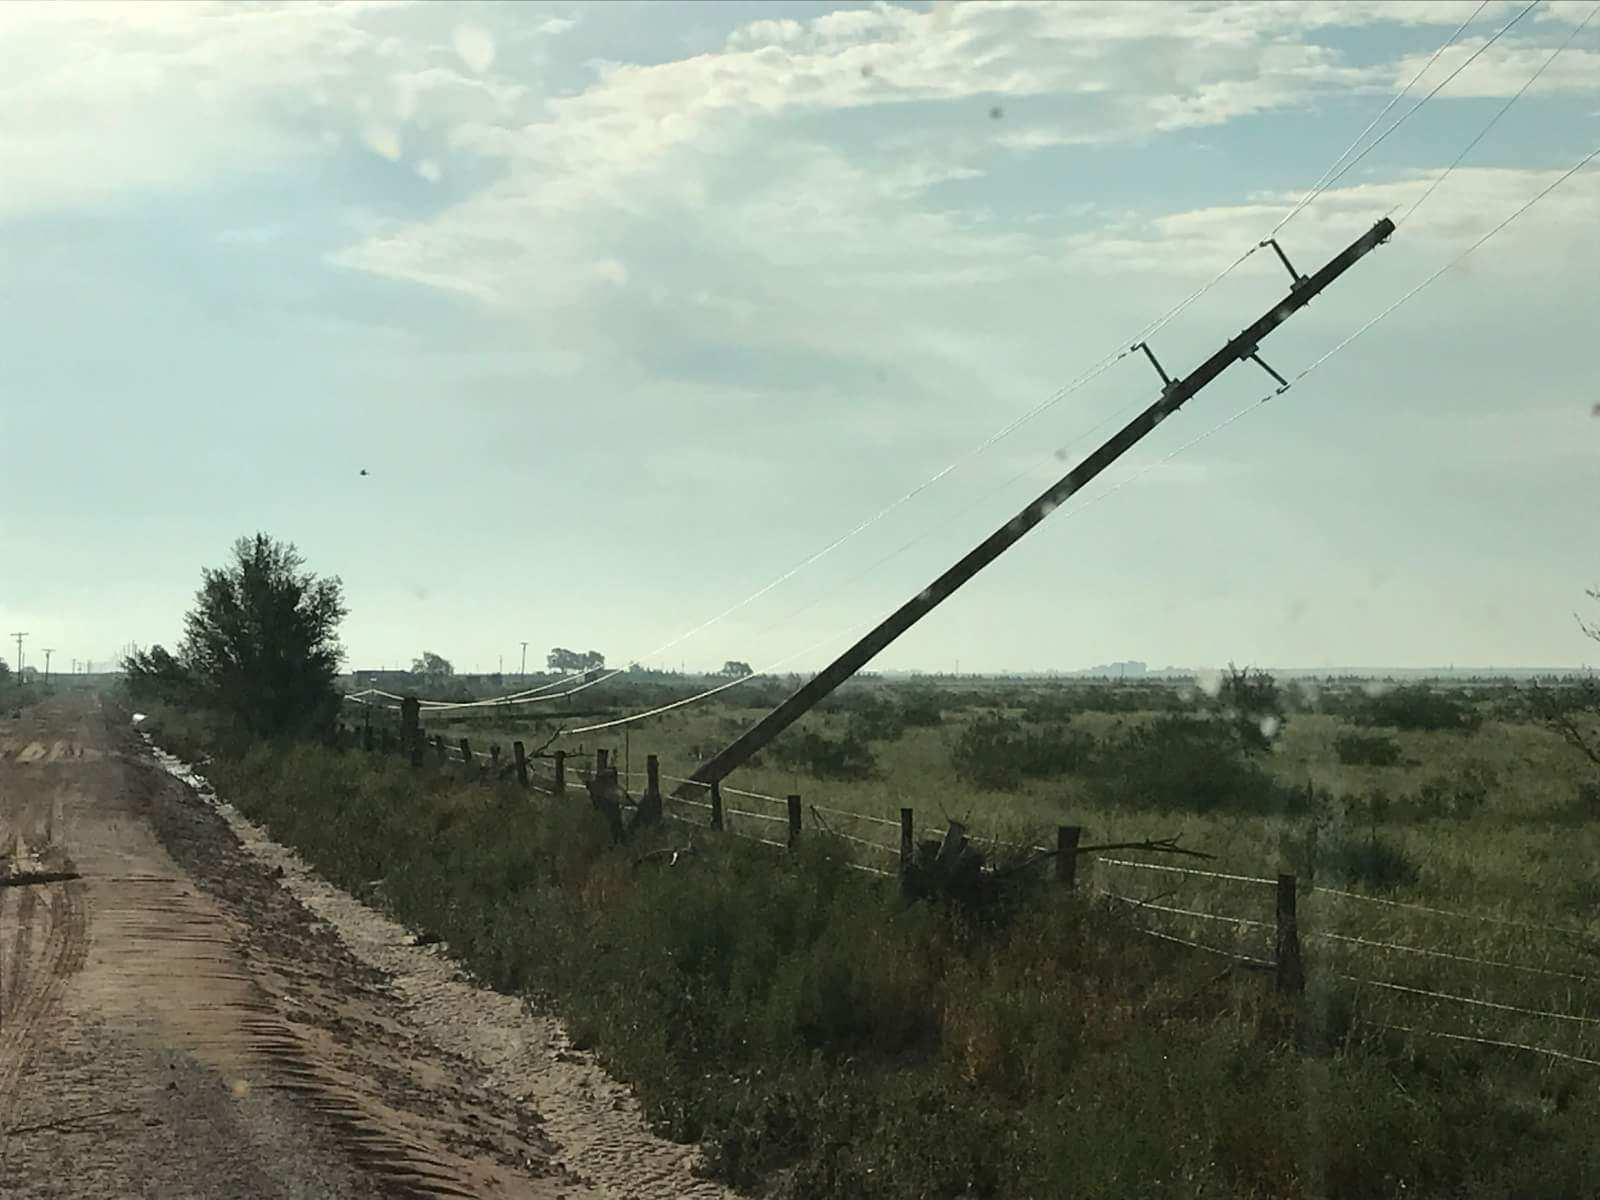 Thursday night storms in Eastern New Mexico caused major damage in Portales. (Photo: Roosevelt County Electric Co-op)